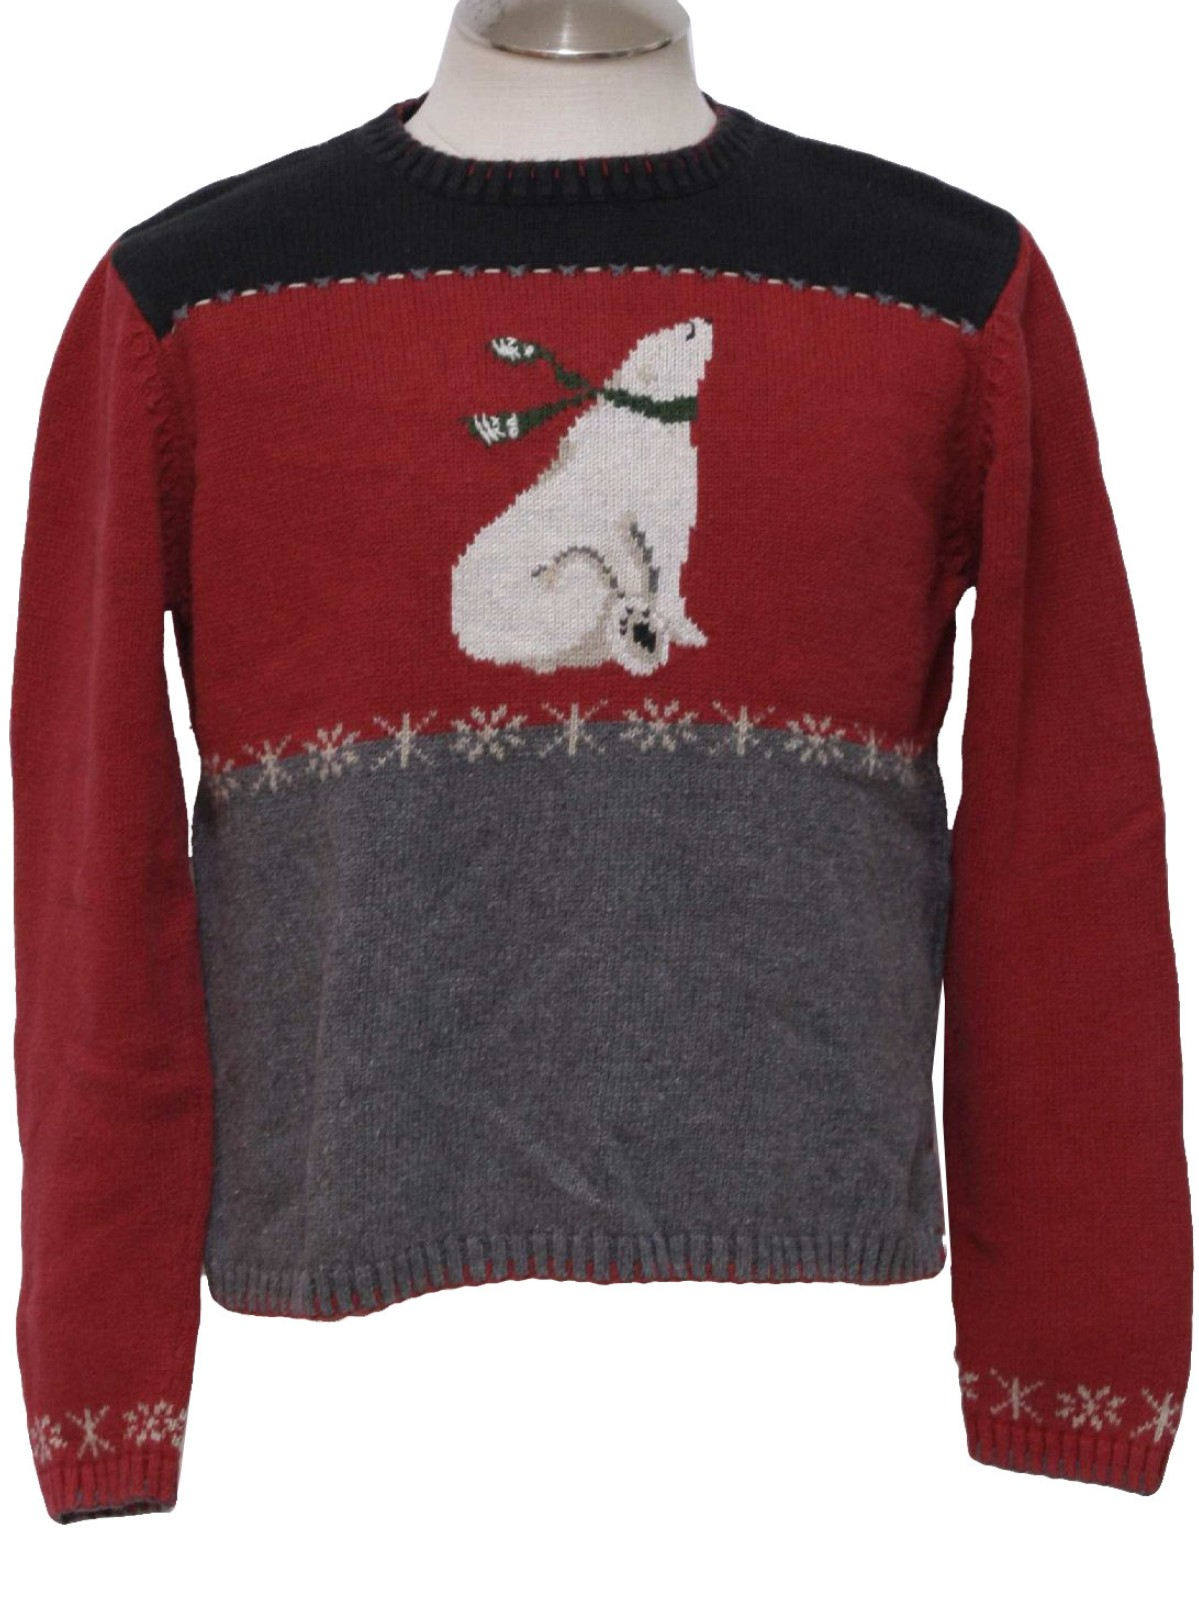 7a972e16e Eighties Woolrich Womens Ugly Christmas Sweater   90s authentic ...